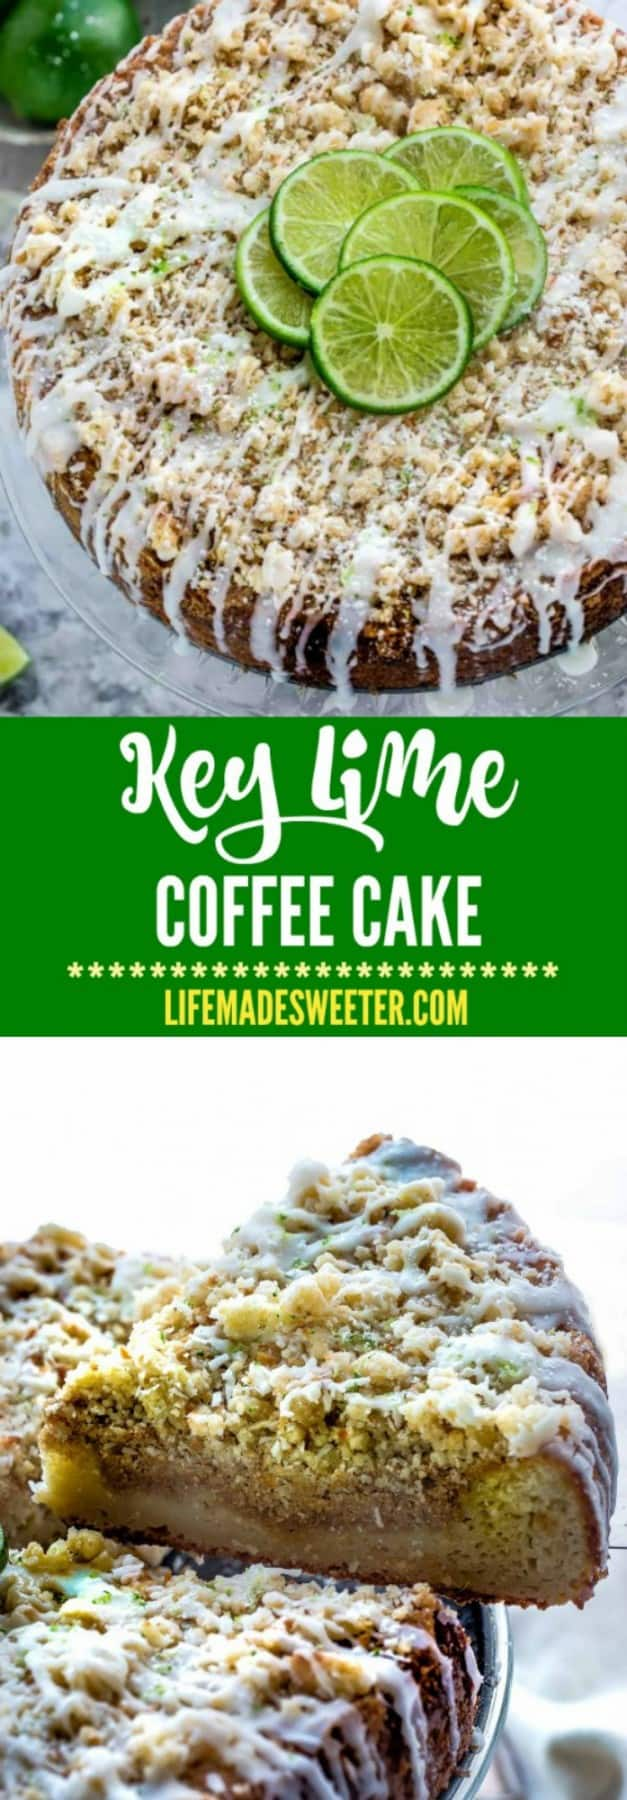 Key Lime Coffee Cake makes the perfect breakfast or afternoon treat